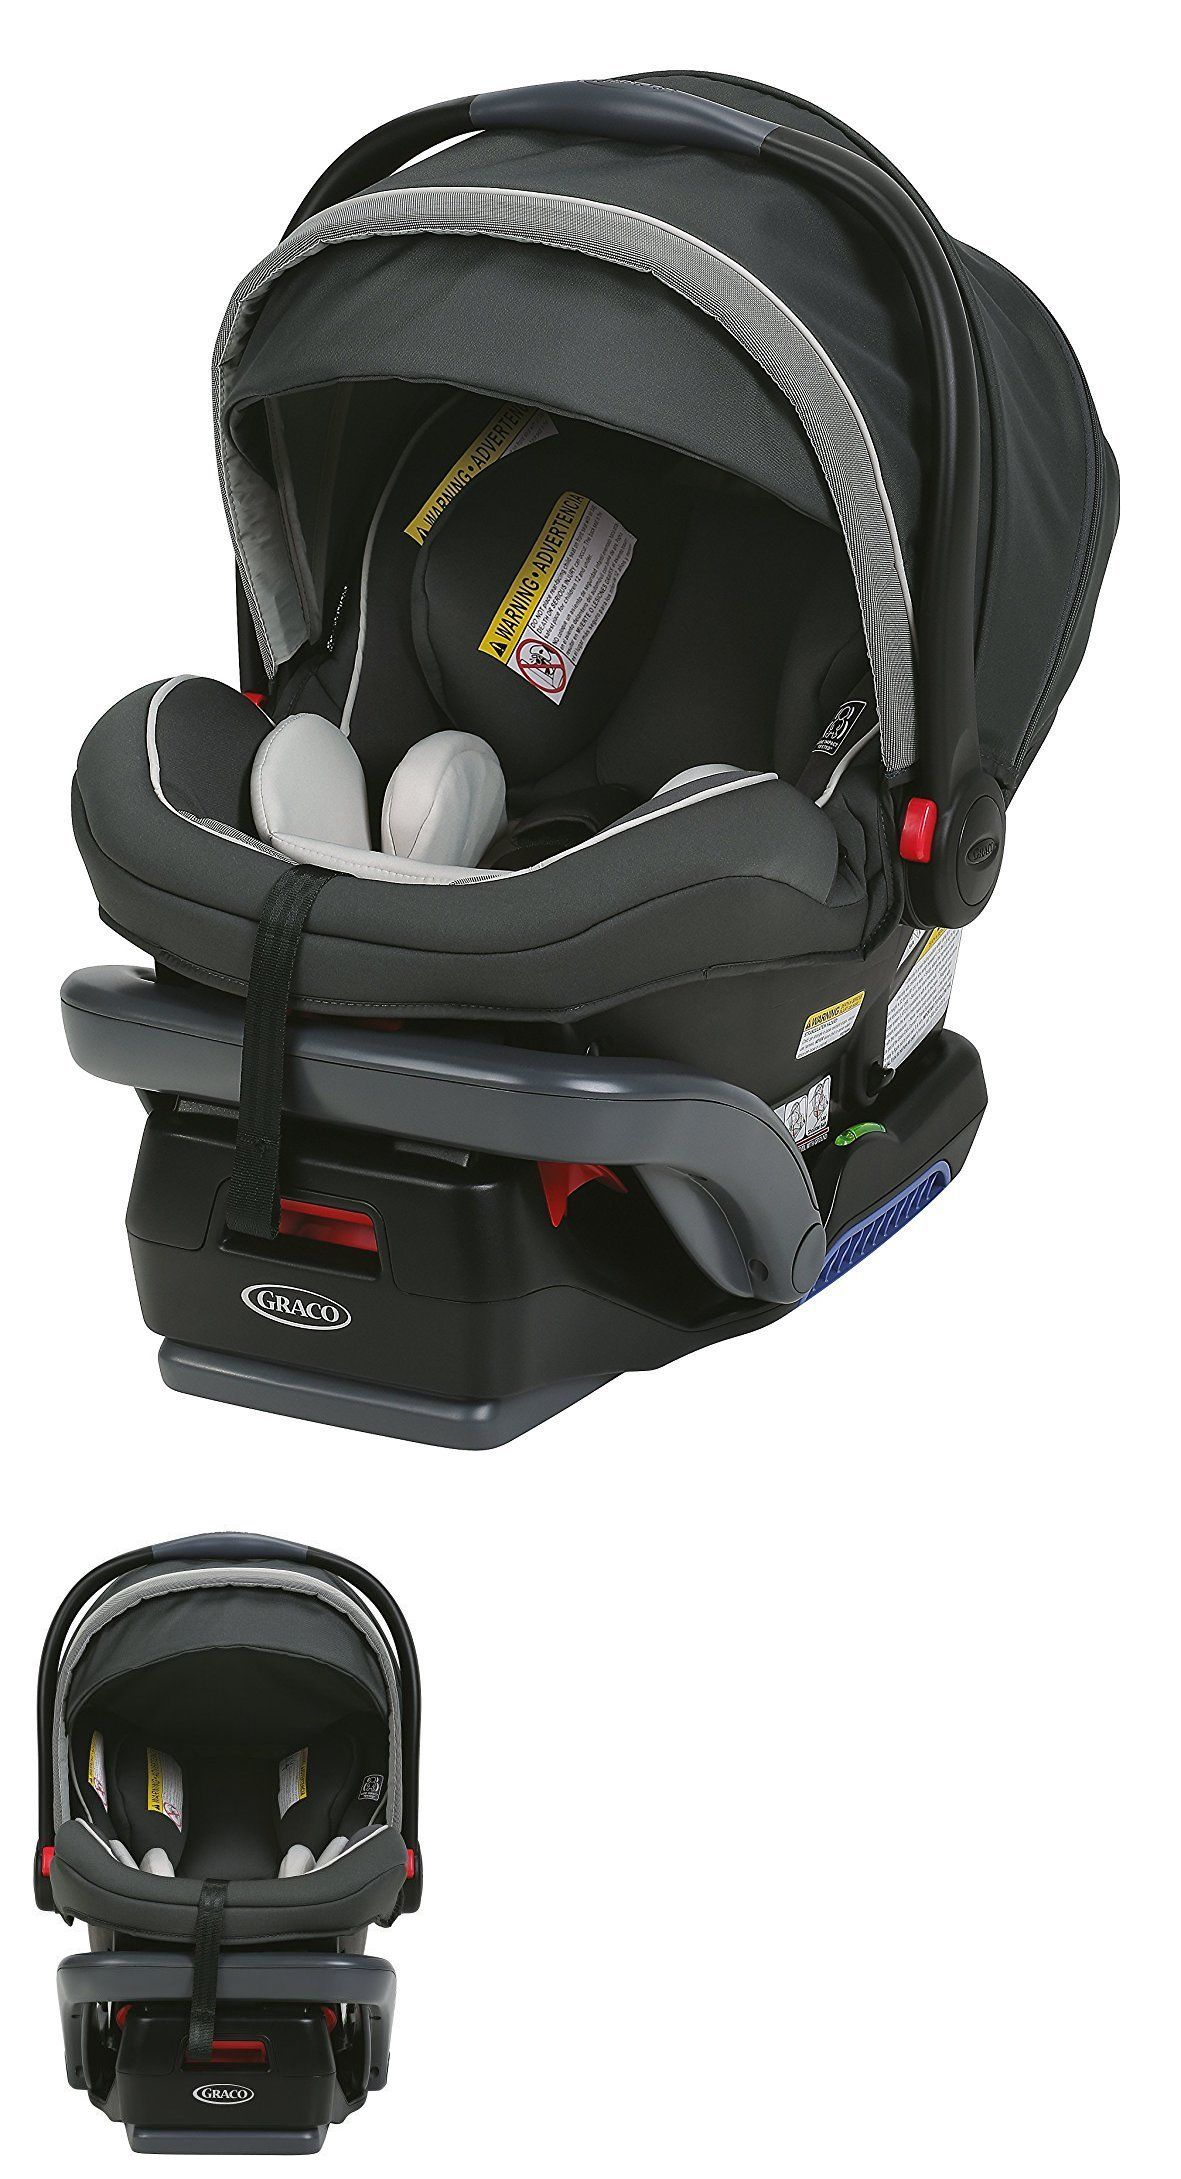 Infant Car Seat 5 20 Lbs 66696 Graco Snugride Snuglock 35 Elite Oakley Msrp 219 BUY IT NOW ONLY 13929 On EBay